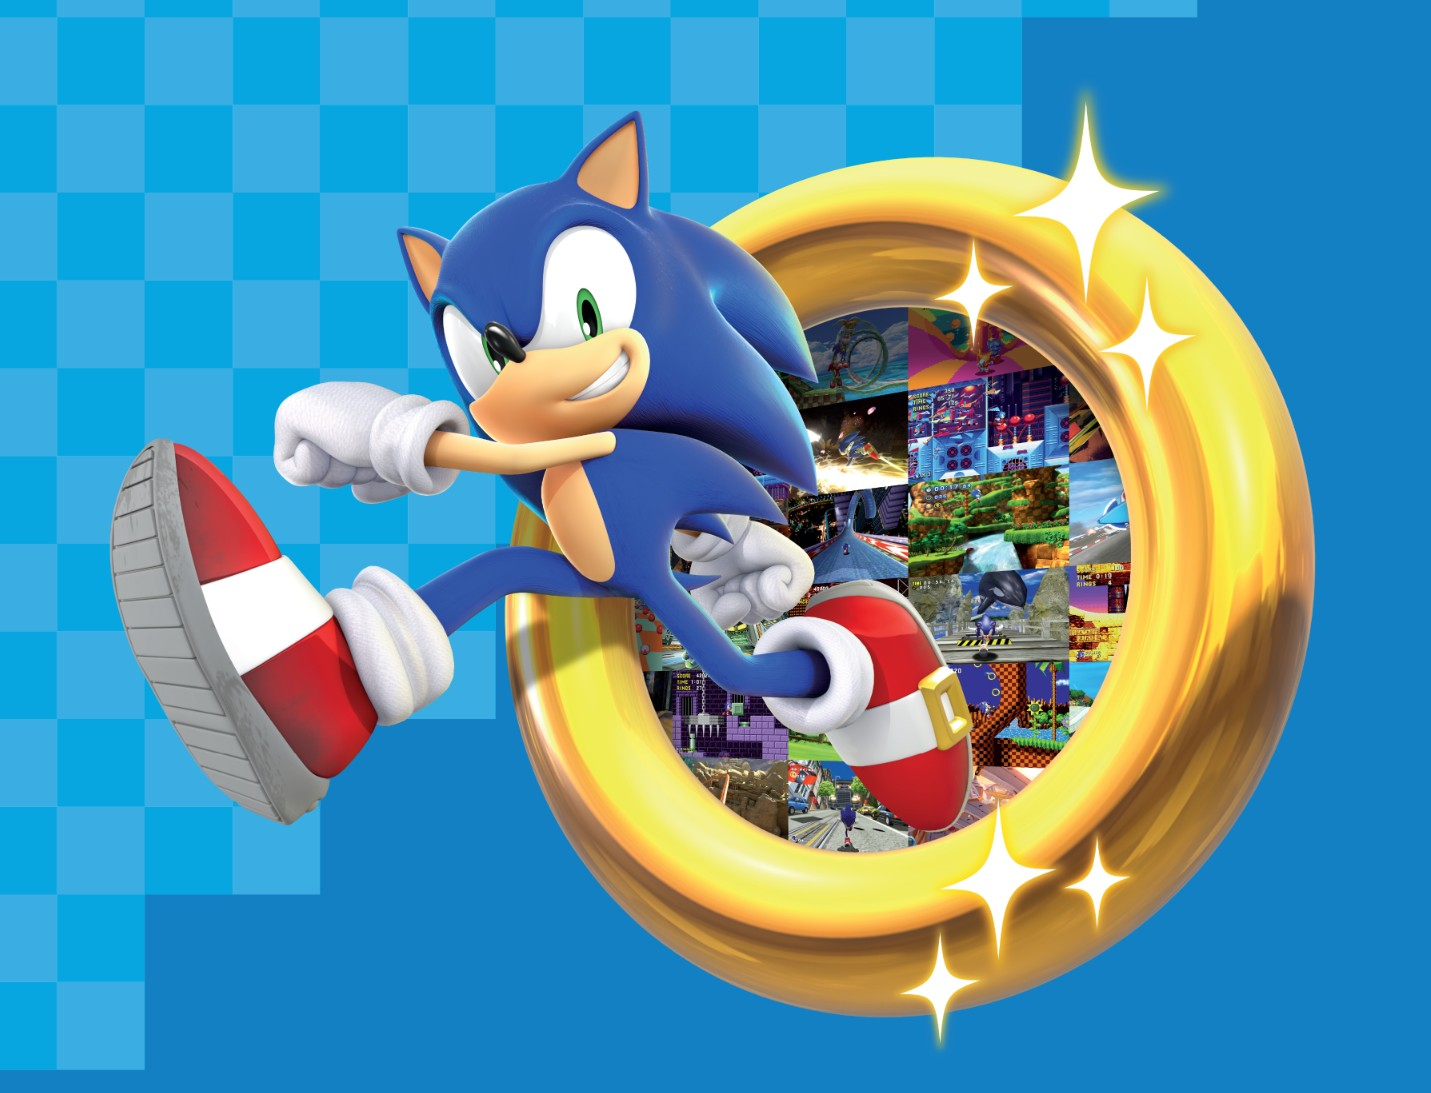 2021's 'Sonic Anniversary Collection' consists of 'toys, apparel and more' screenshot